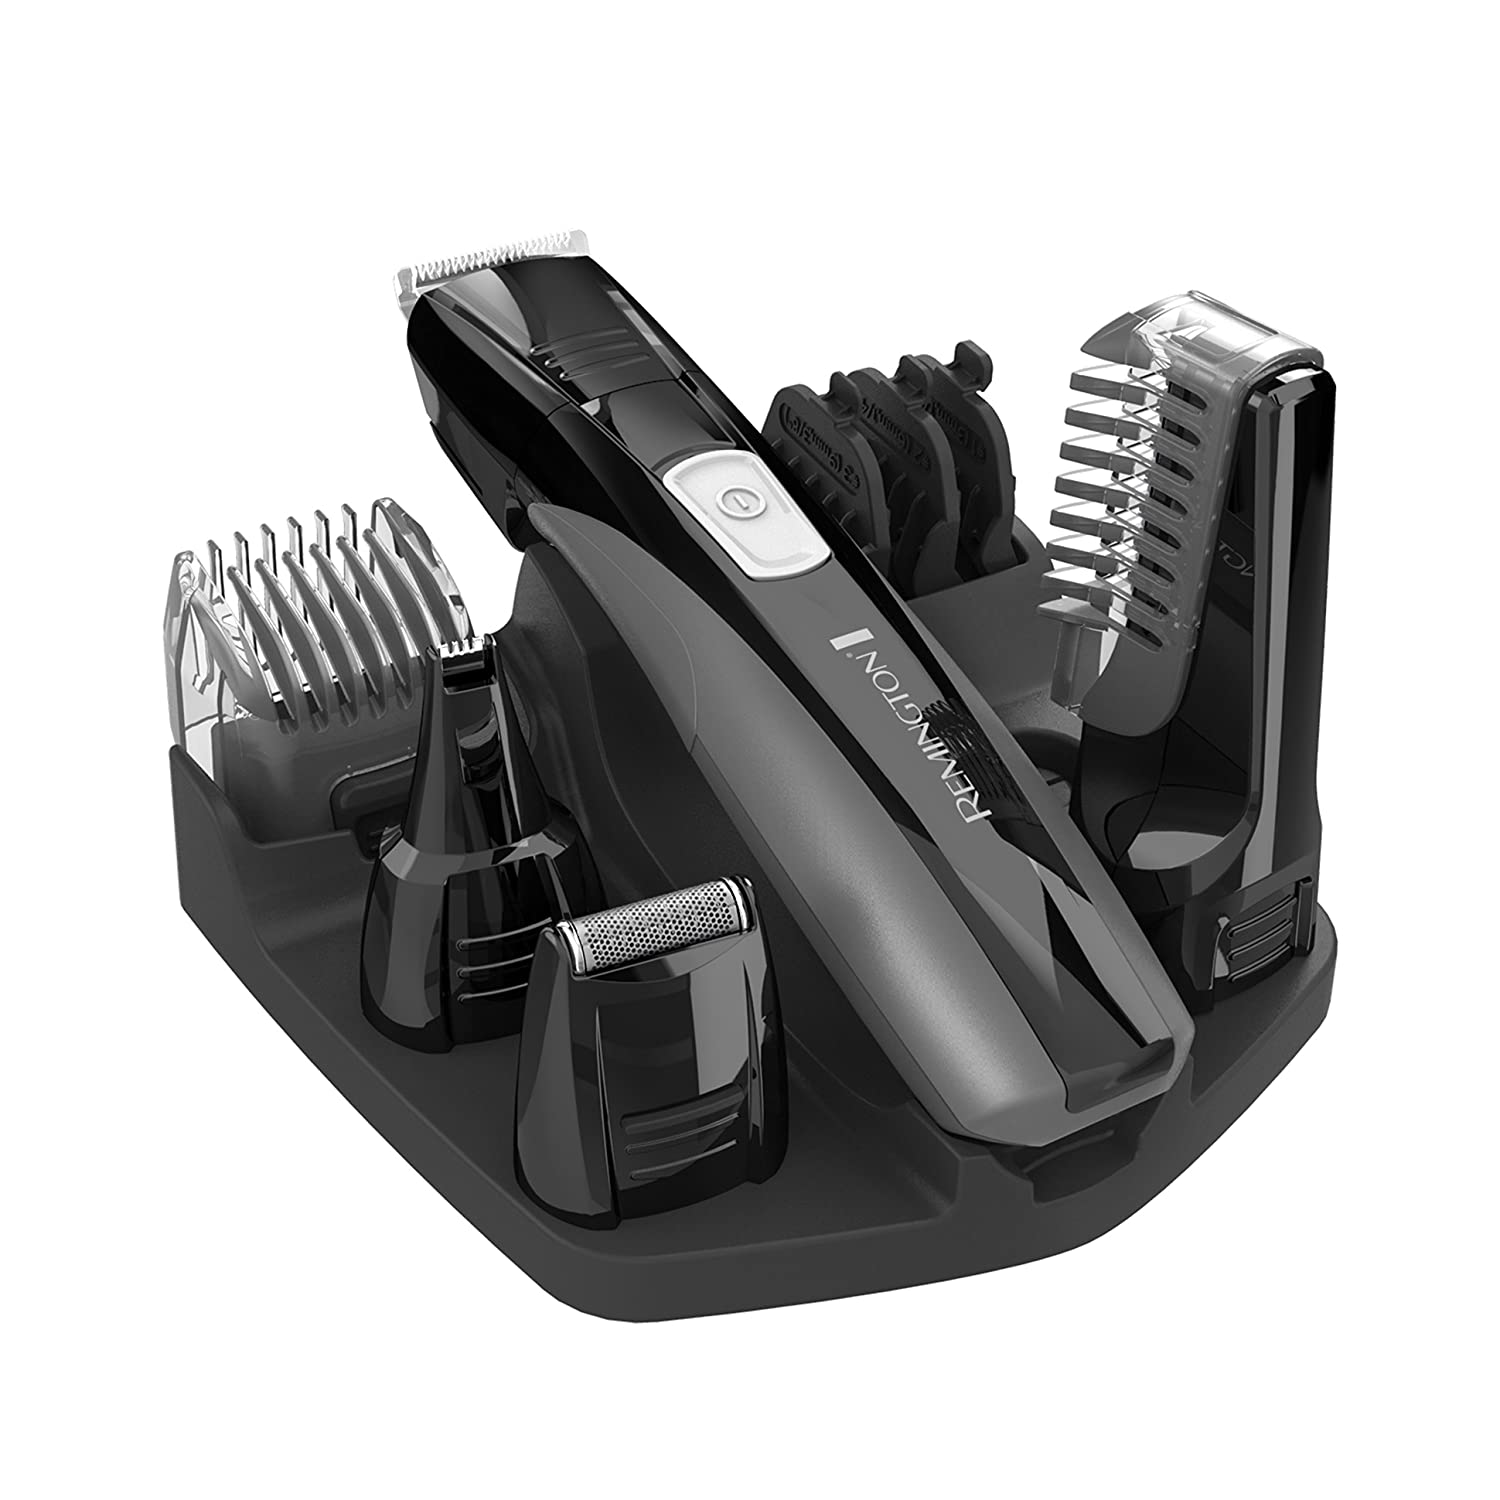 Remington PG525 Head to Toe Lithium Powered Body Groomer Kit review